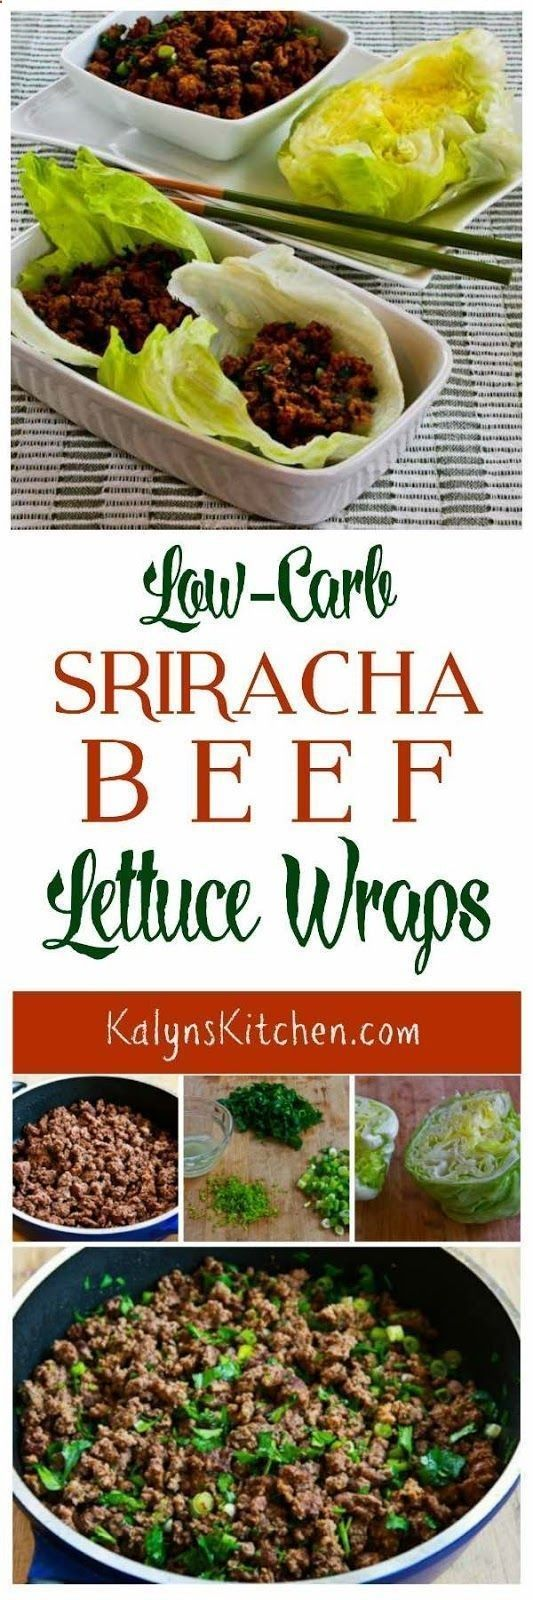 The Anabolic Cooking Cookbook - I love, love, love lettuce wraps, and these Low-Carb Sriracha Beef Lettuce Wraps are one of my favorites. This low-carb recipe is also gluten-free, dairy-free, and South Beach Diet Phase One. [found on KalynsKitchen.com] - The legendary Anabolic Cooking Cookbook. The Ultimate Cookbook and Nutrition Guide for Bodybuilding & Fitness. More than 200 muscle building and fat burning recipes.